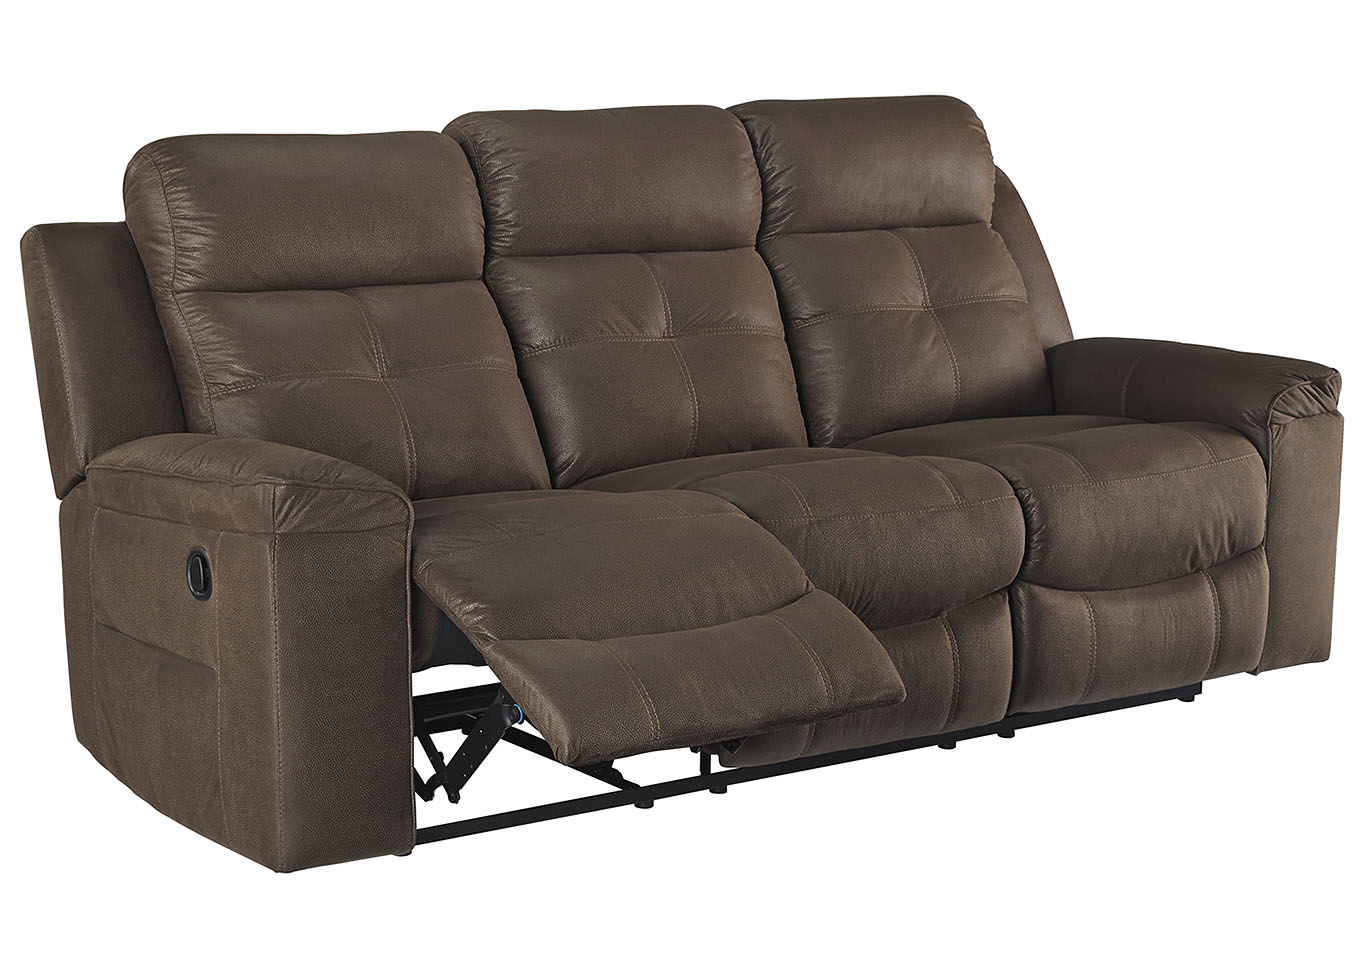 Jesolo Coffee Reclining Sofa,Signature Design By Ashley